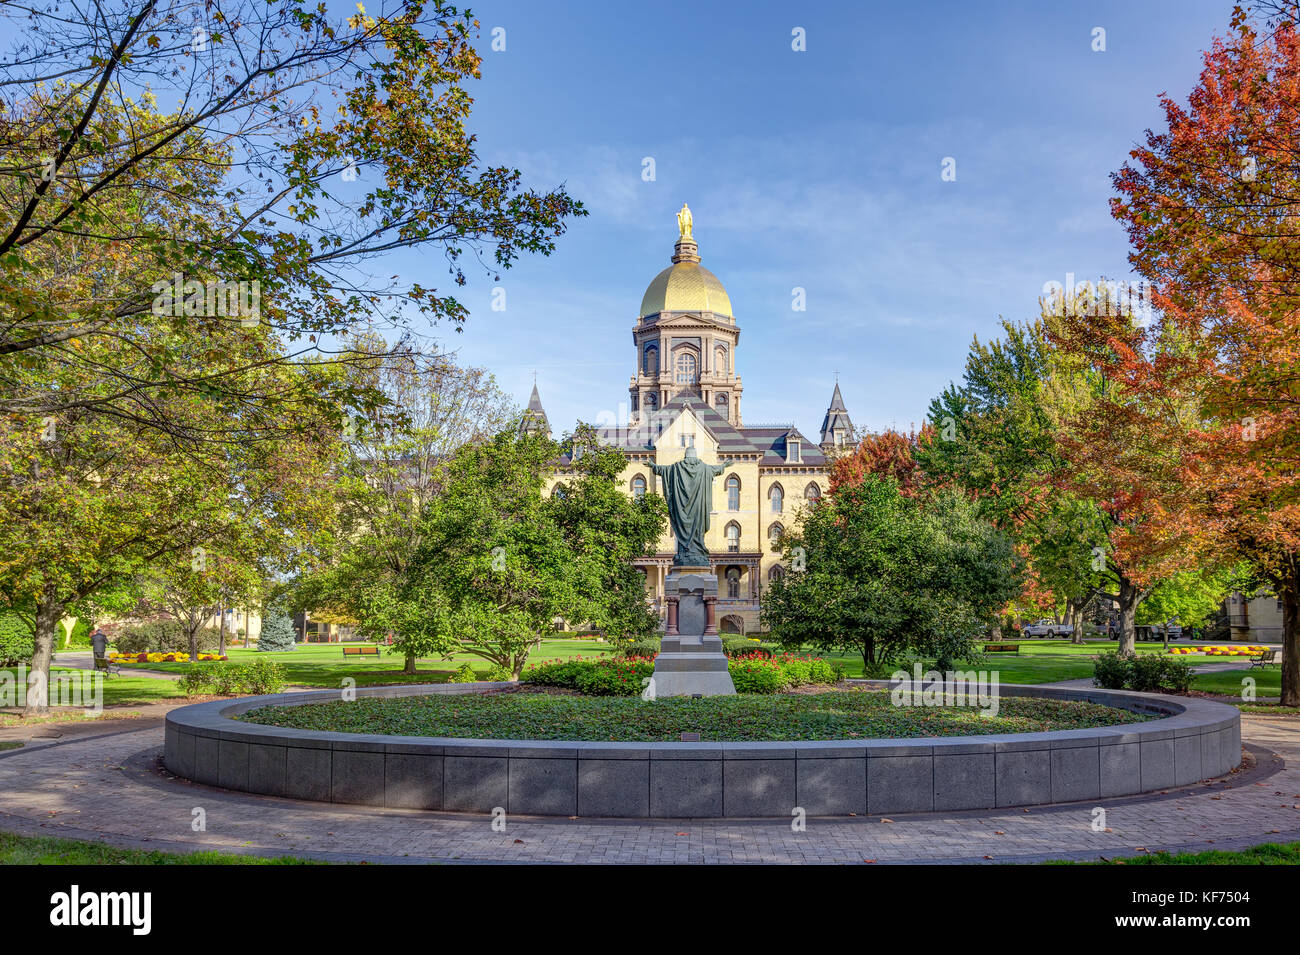 NOTRE DAME, IN/USA - OCTOBER 19, 2017:  Jesus Statue and Golden Dome on the campus of Notre Dame University. - Stock Image